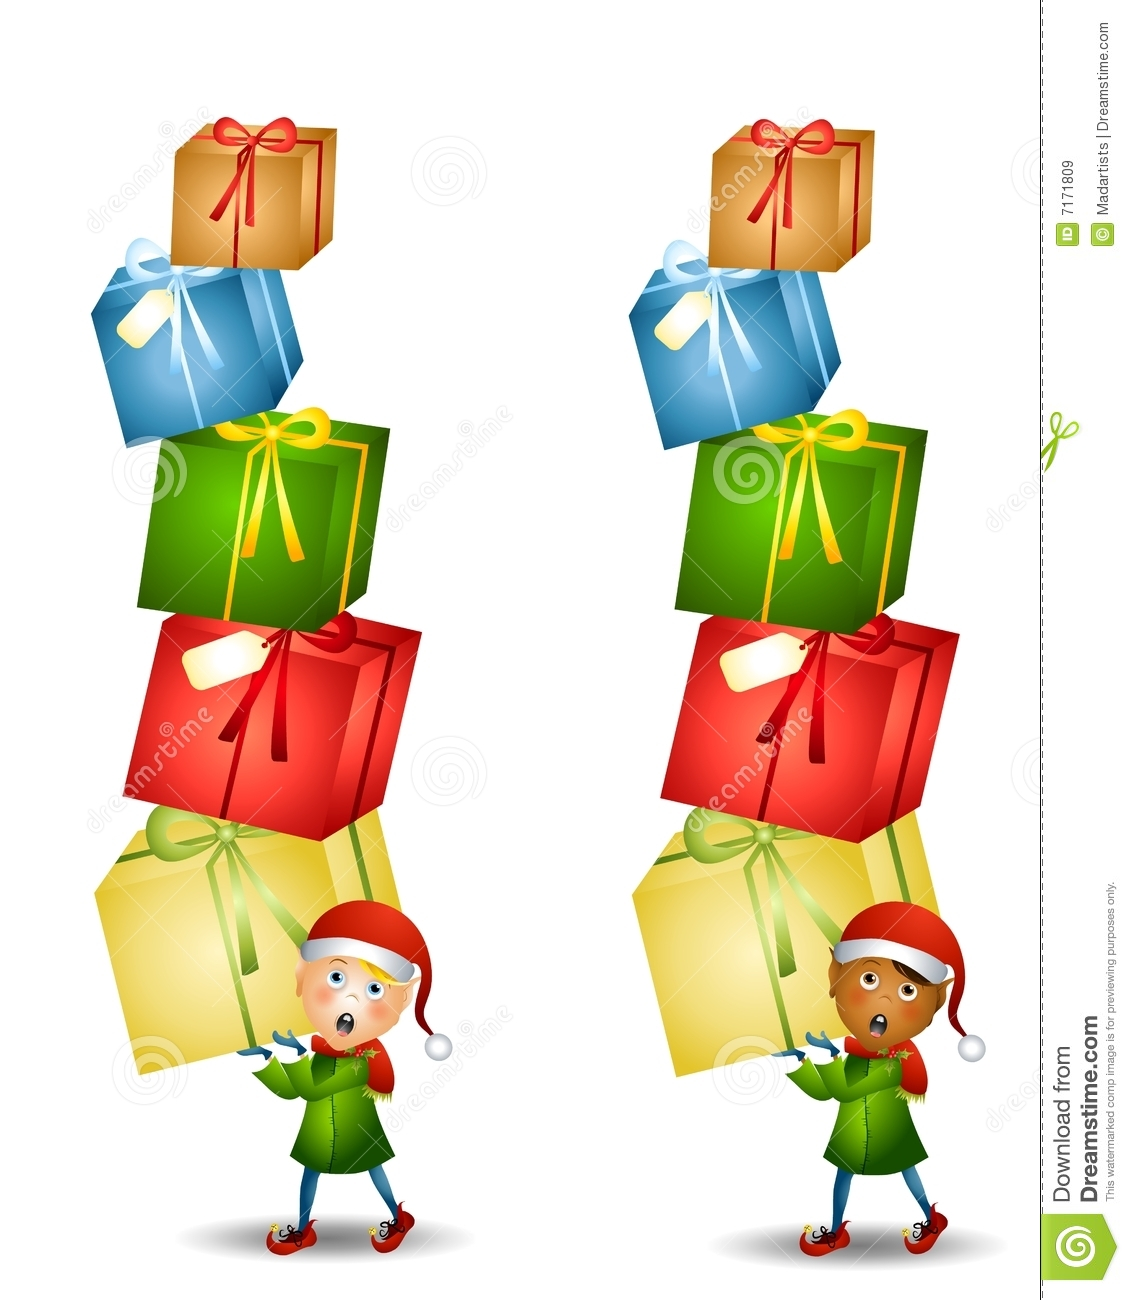 Christmas Toys Clip Art : Elf carrying christmas gifts stock illustration image